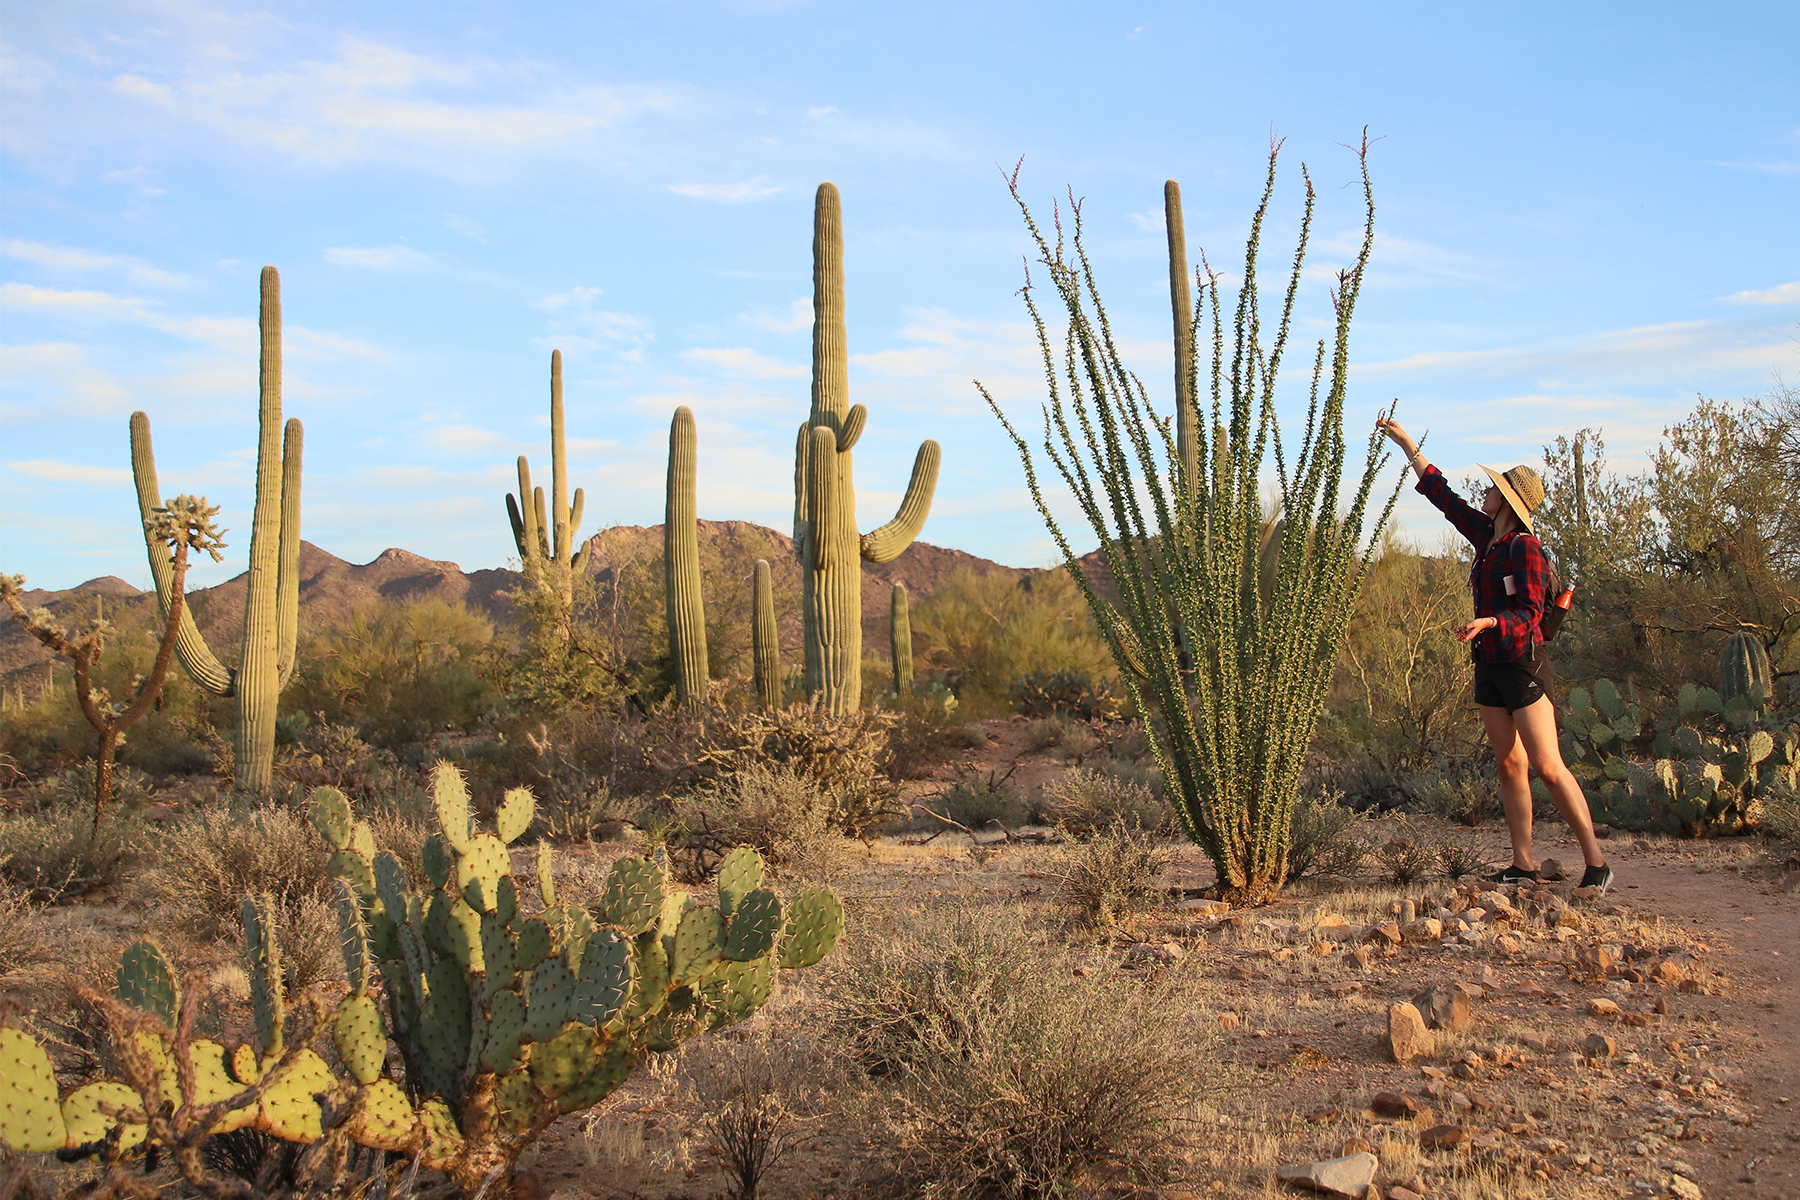 50states-journey-hiking-AZ-saguaronationalpark-kendra.jpg